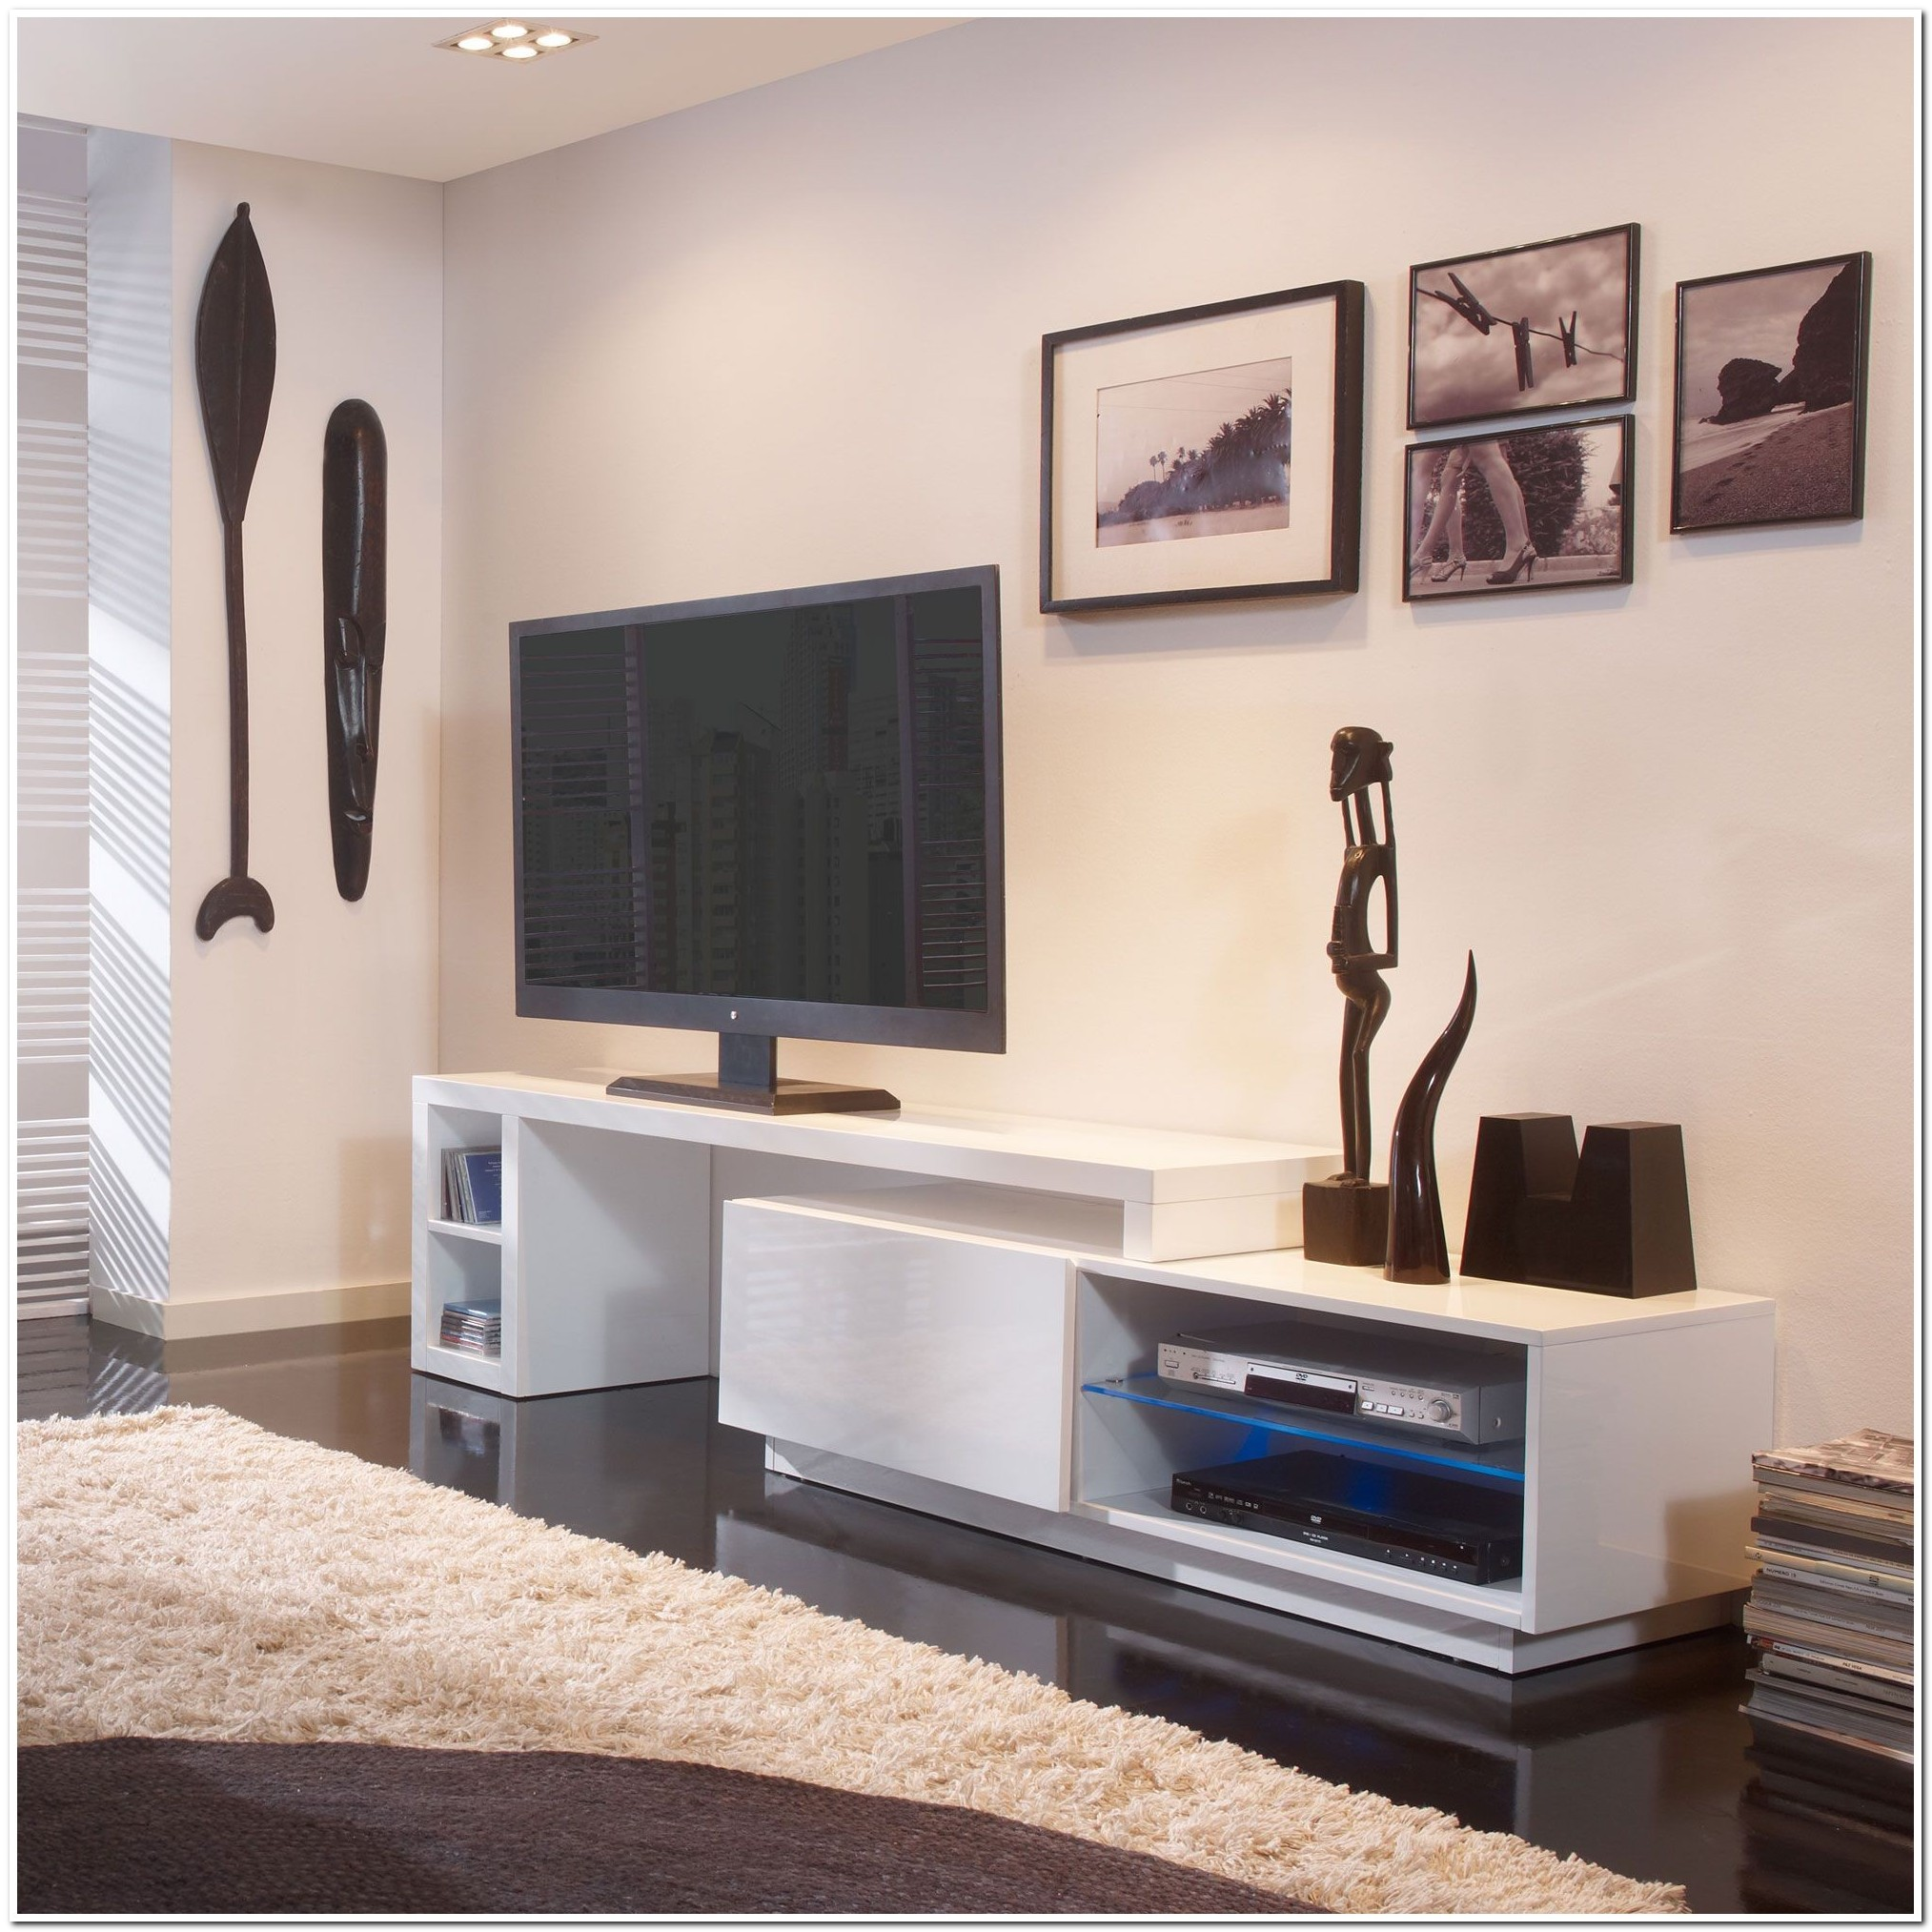 Meuble Bas De Tele Design